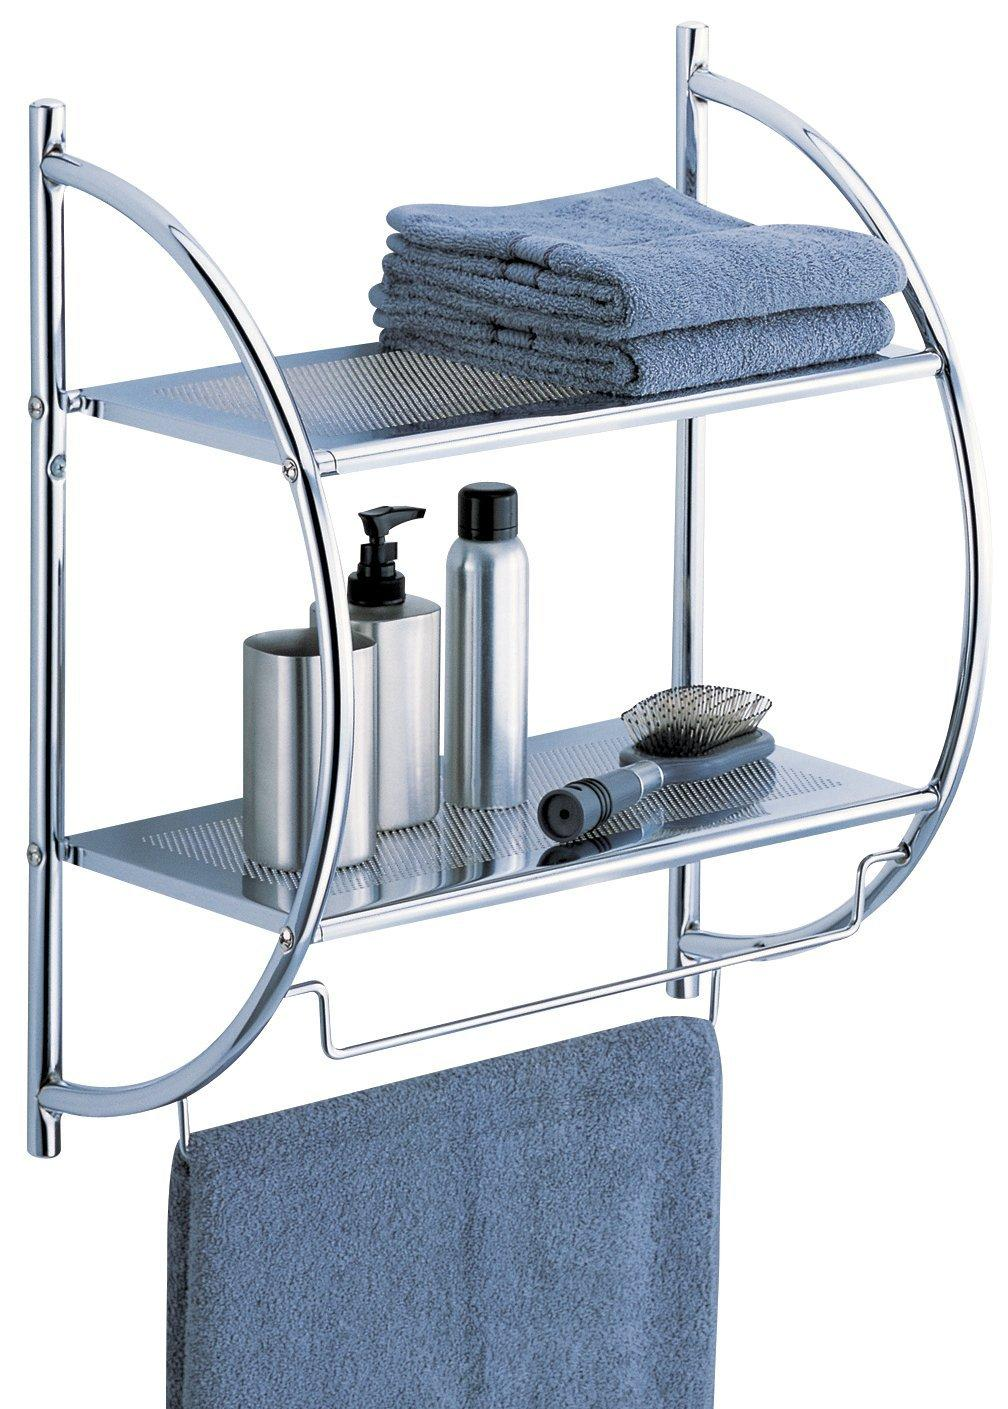 #1 Best Seller! Organize It All 2-Tier Shelf with Towel Bars (1753)